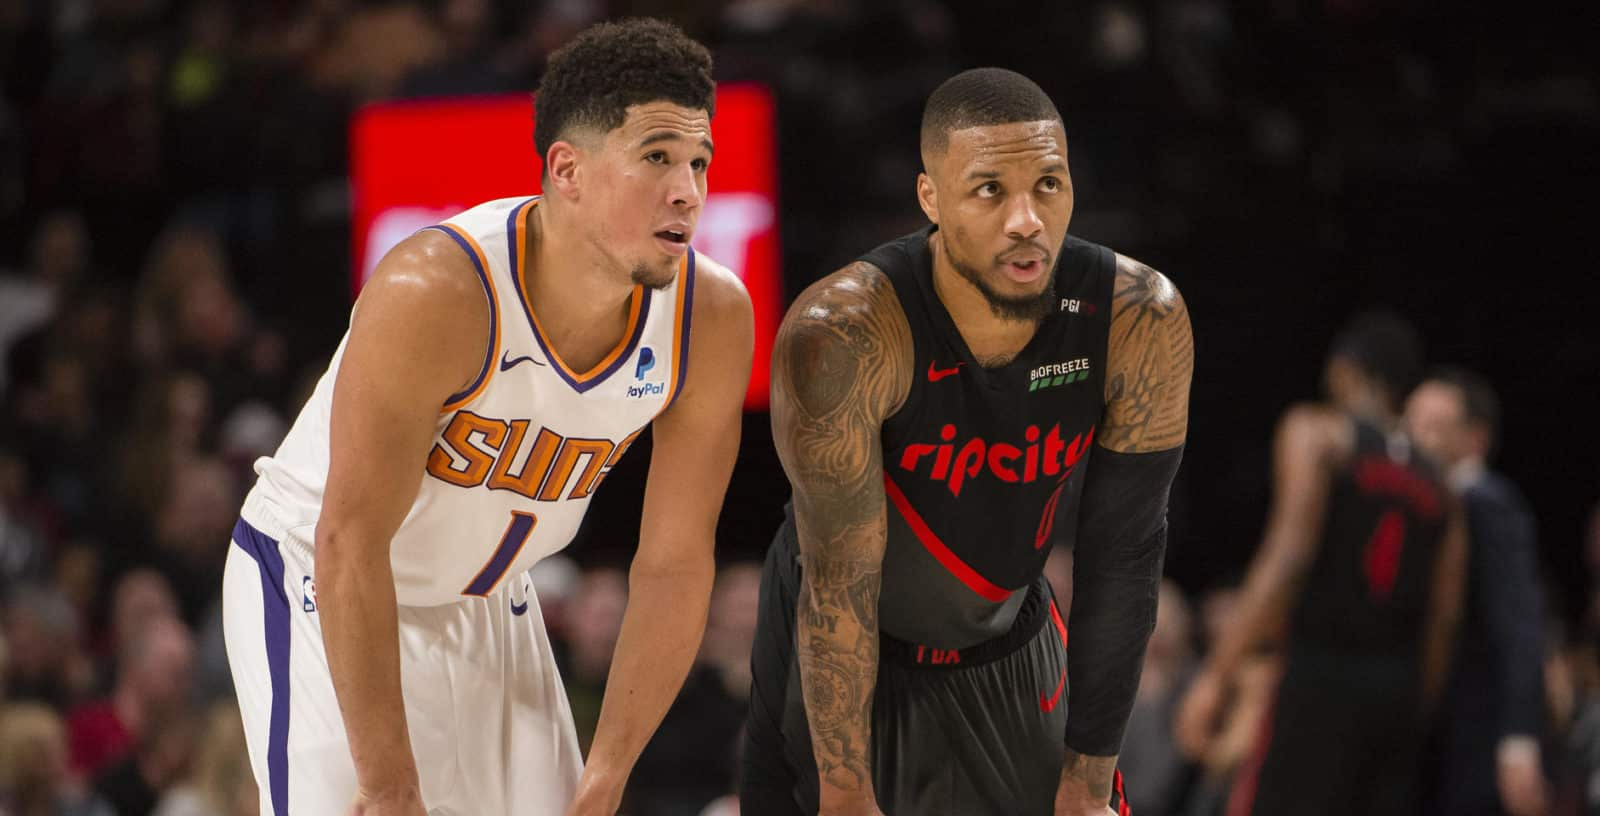 Odds on Who Will Be Named NBA MVP of the Seeding Games